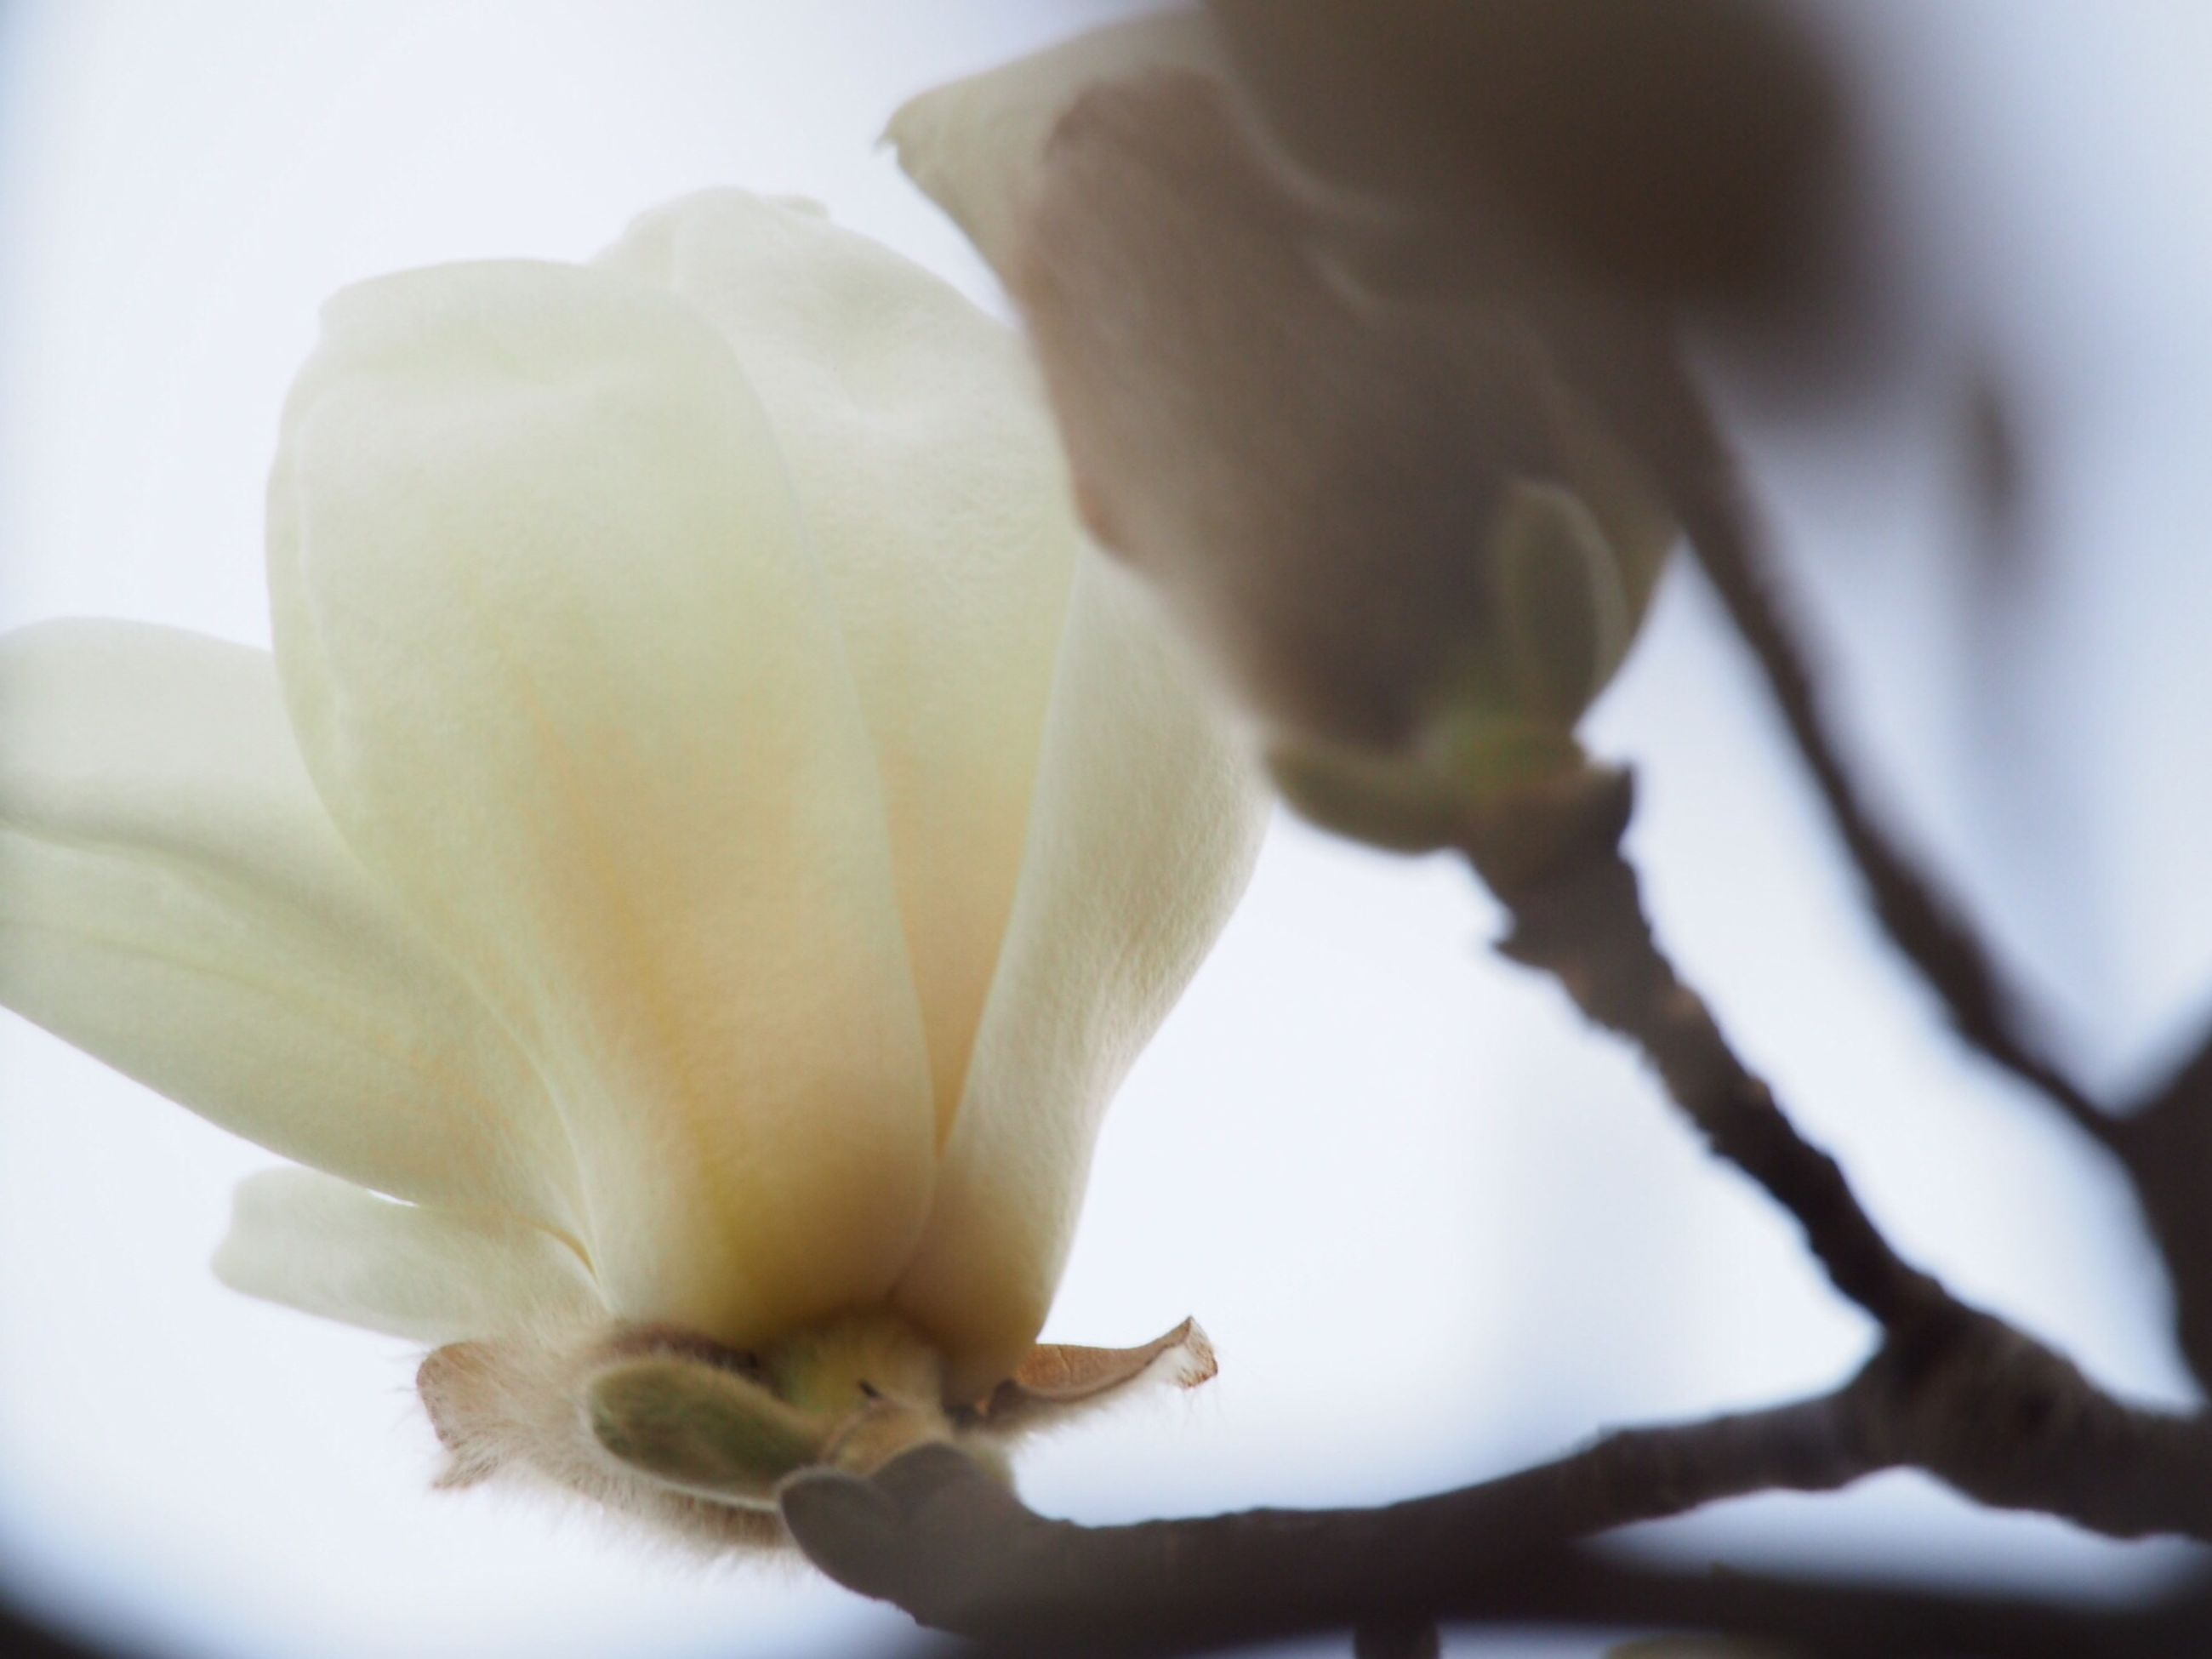 flower, petal, freshness, fragility, flower head, close-up, growth, beauty in nature, nature, single flower, bud, focus on foreground, stamen, blooming, plant, selective focus, stem, white color, pollen, blossom